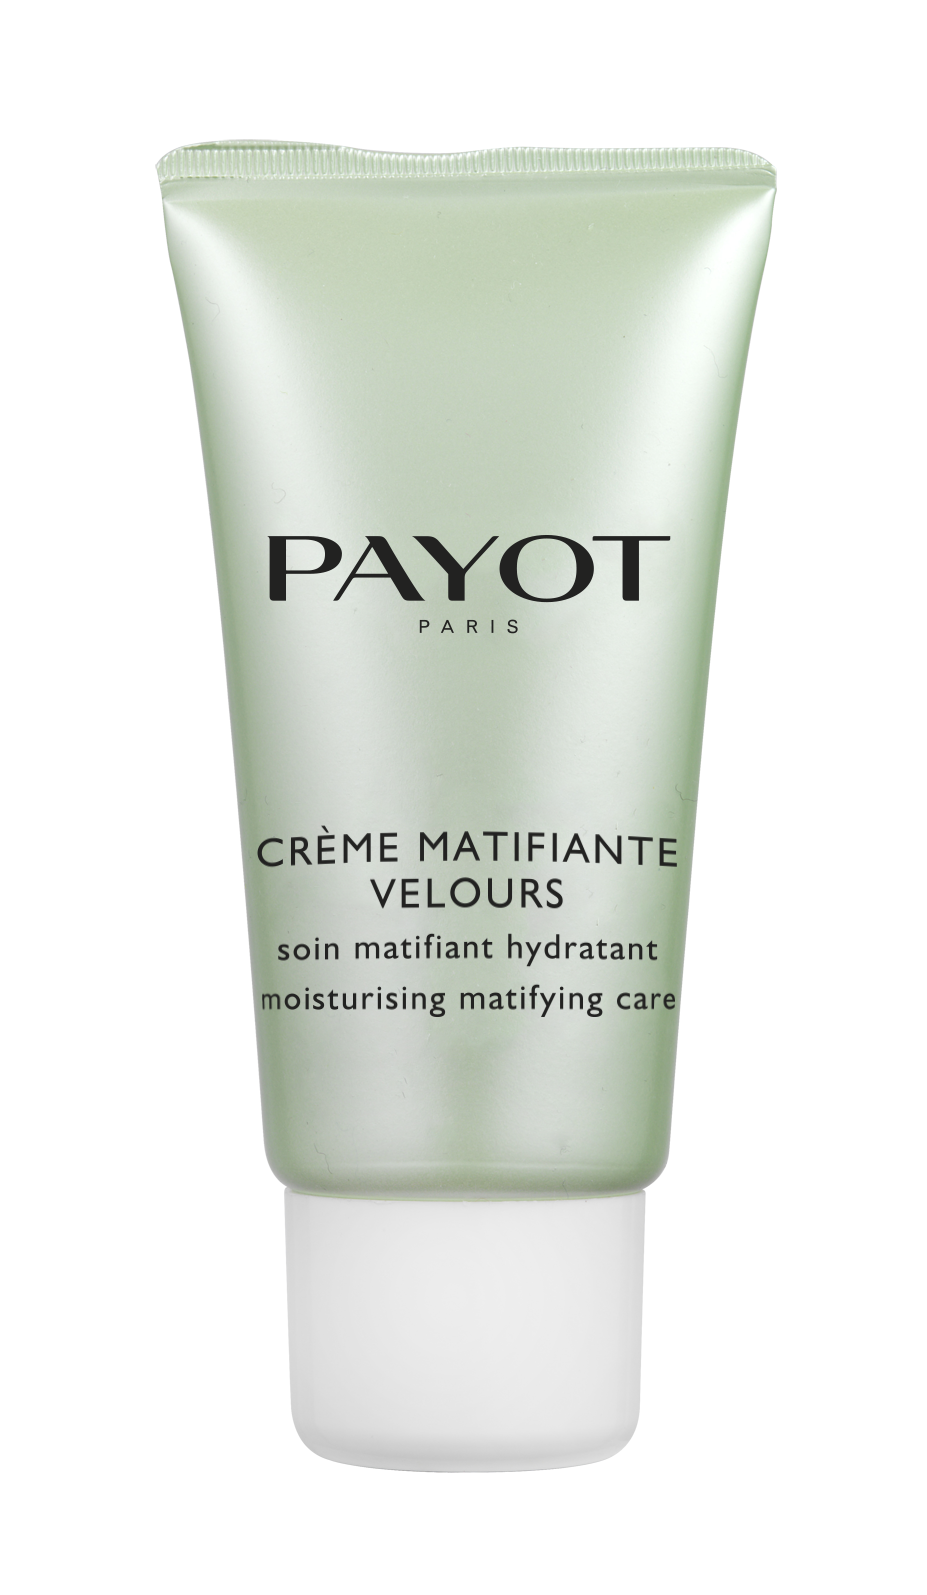 Payot Creme Matifiante Velours